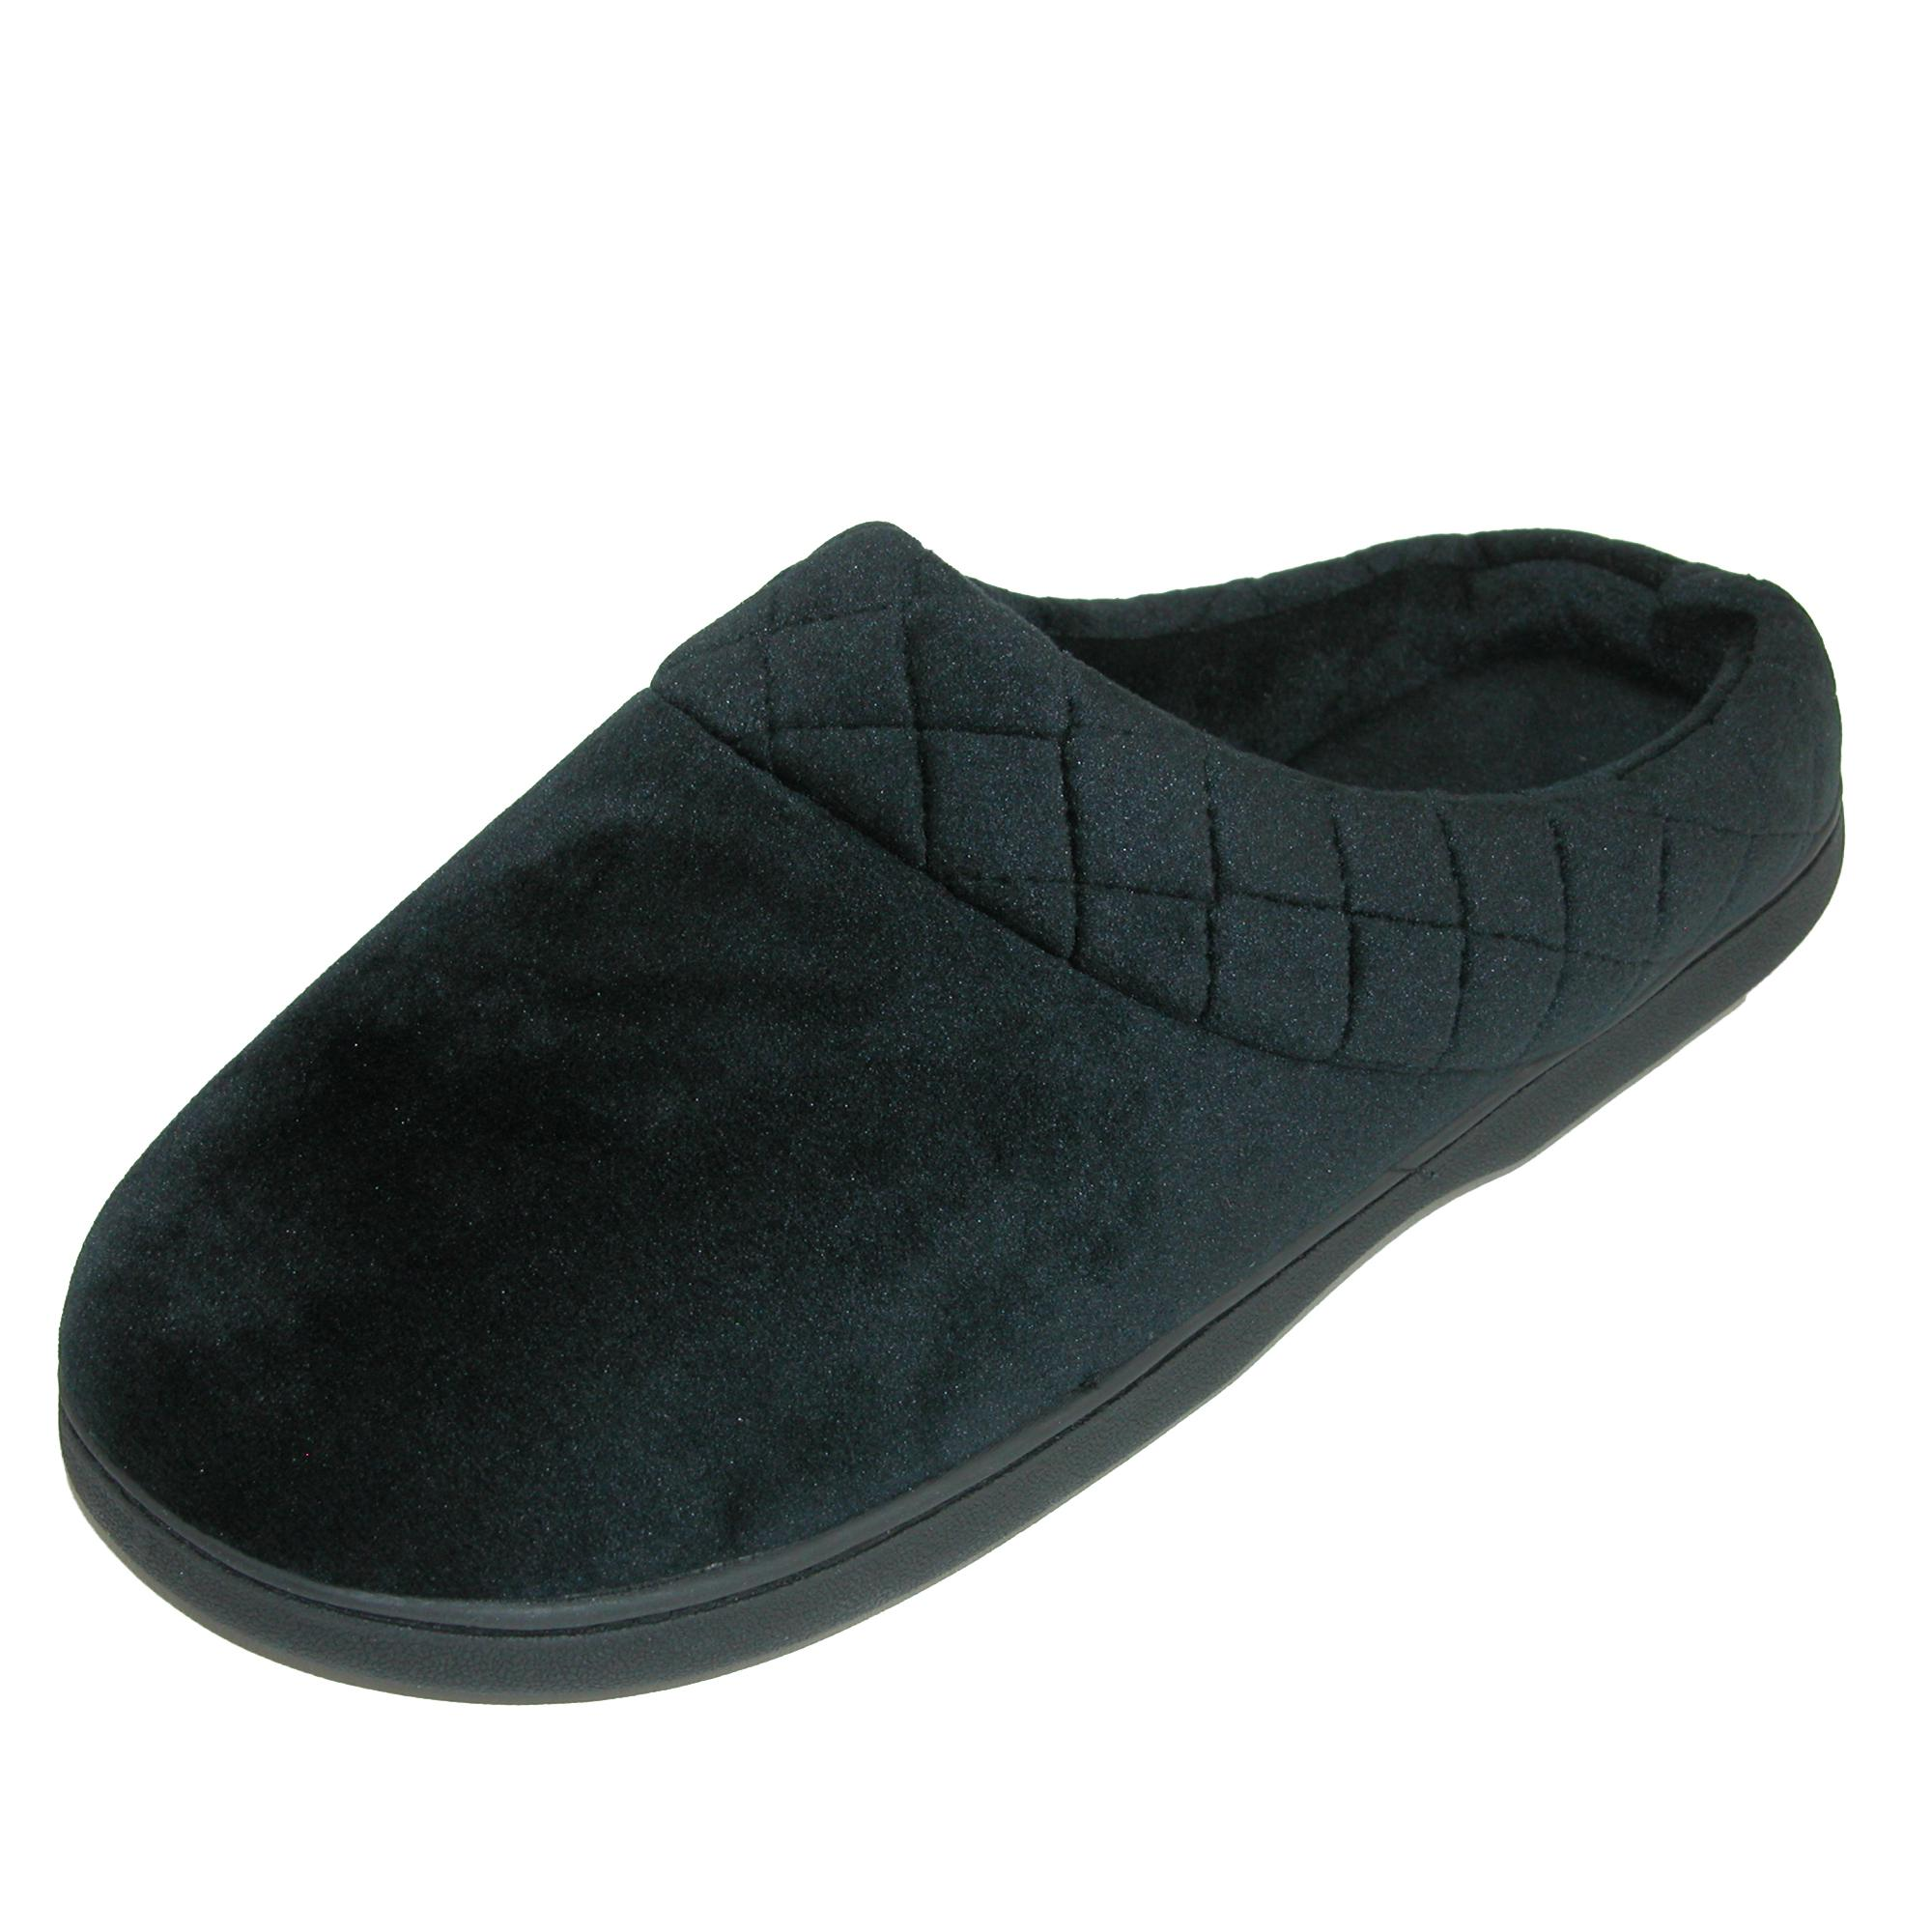 New-Dearfoams-Women-039-s-Microfiber-Velour-Clog-Slipper-with-Quilt-Detail thumbnail 4